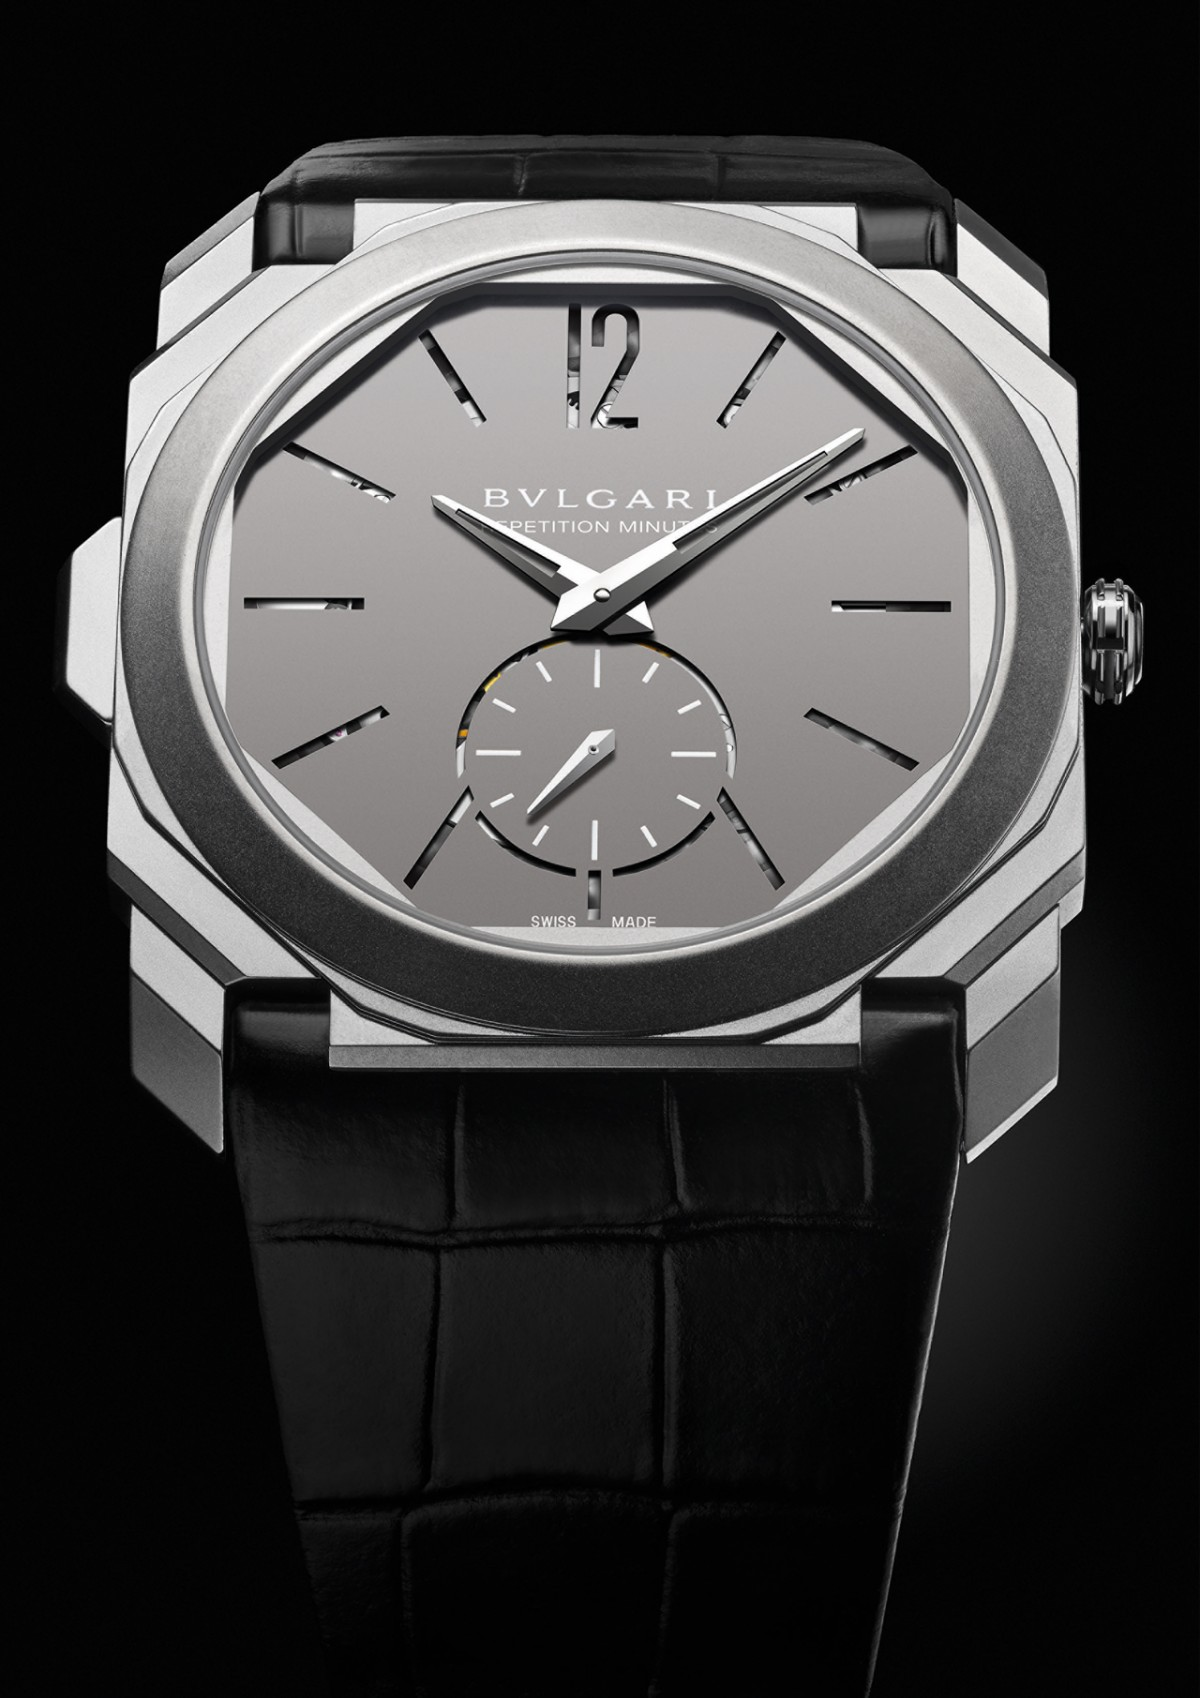 Bulgari Unveils World's Thinnest Minute Repeater Watch